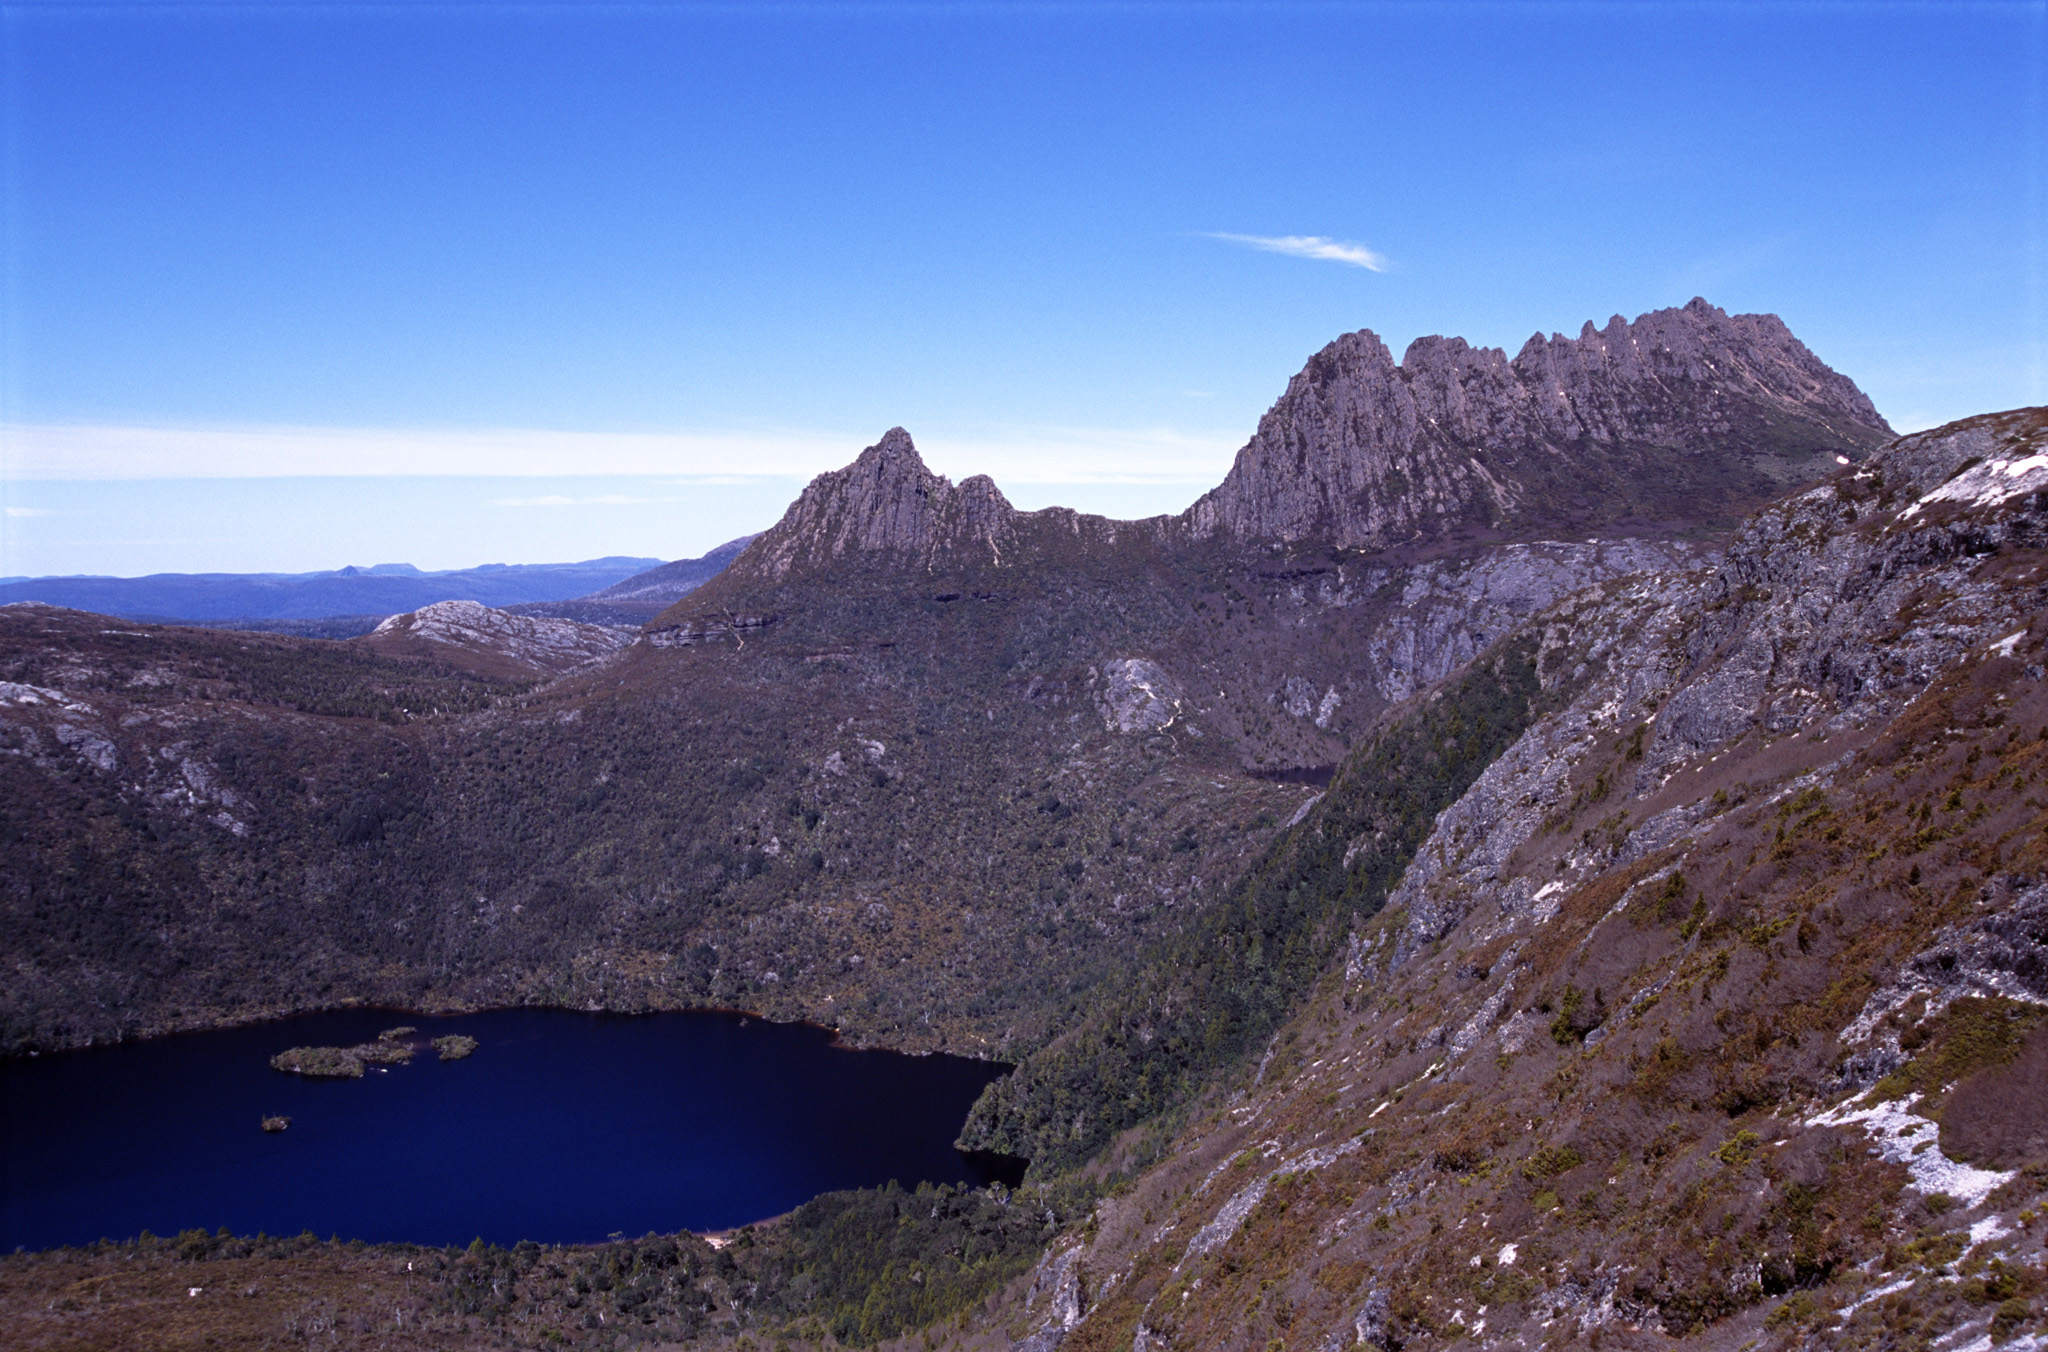 Scenic view of Cradle Mountain Tasmania and the surrounding rugged mountain peaks in the highlands in the heart of Cradle Mountain-Lake St Clair National Park